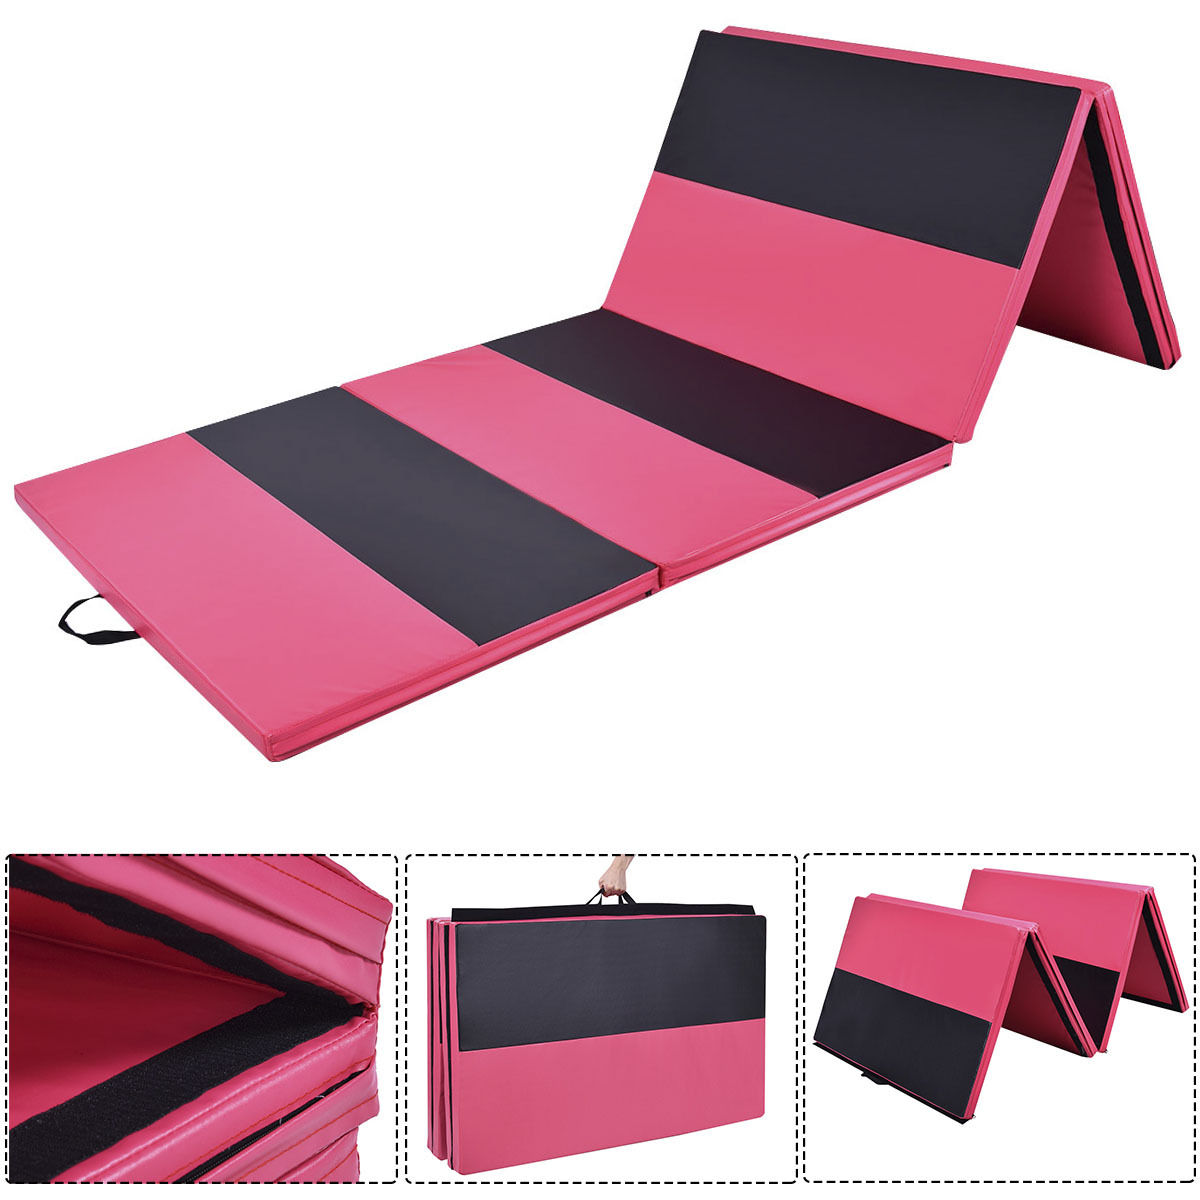 Costway 4'x10'x2''Gymnastics Mat Folding Panel Thick Gym Fitness Exercise Pink/Blk 2016